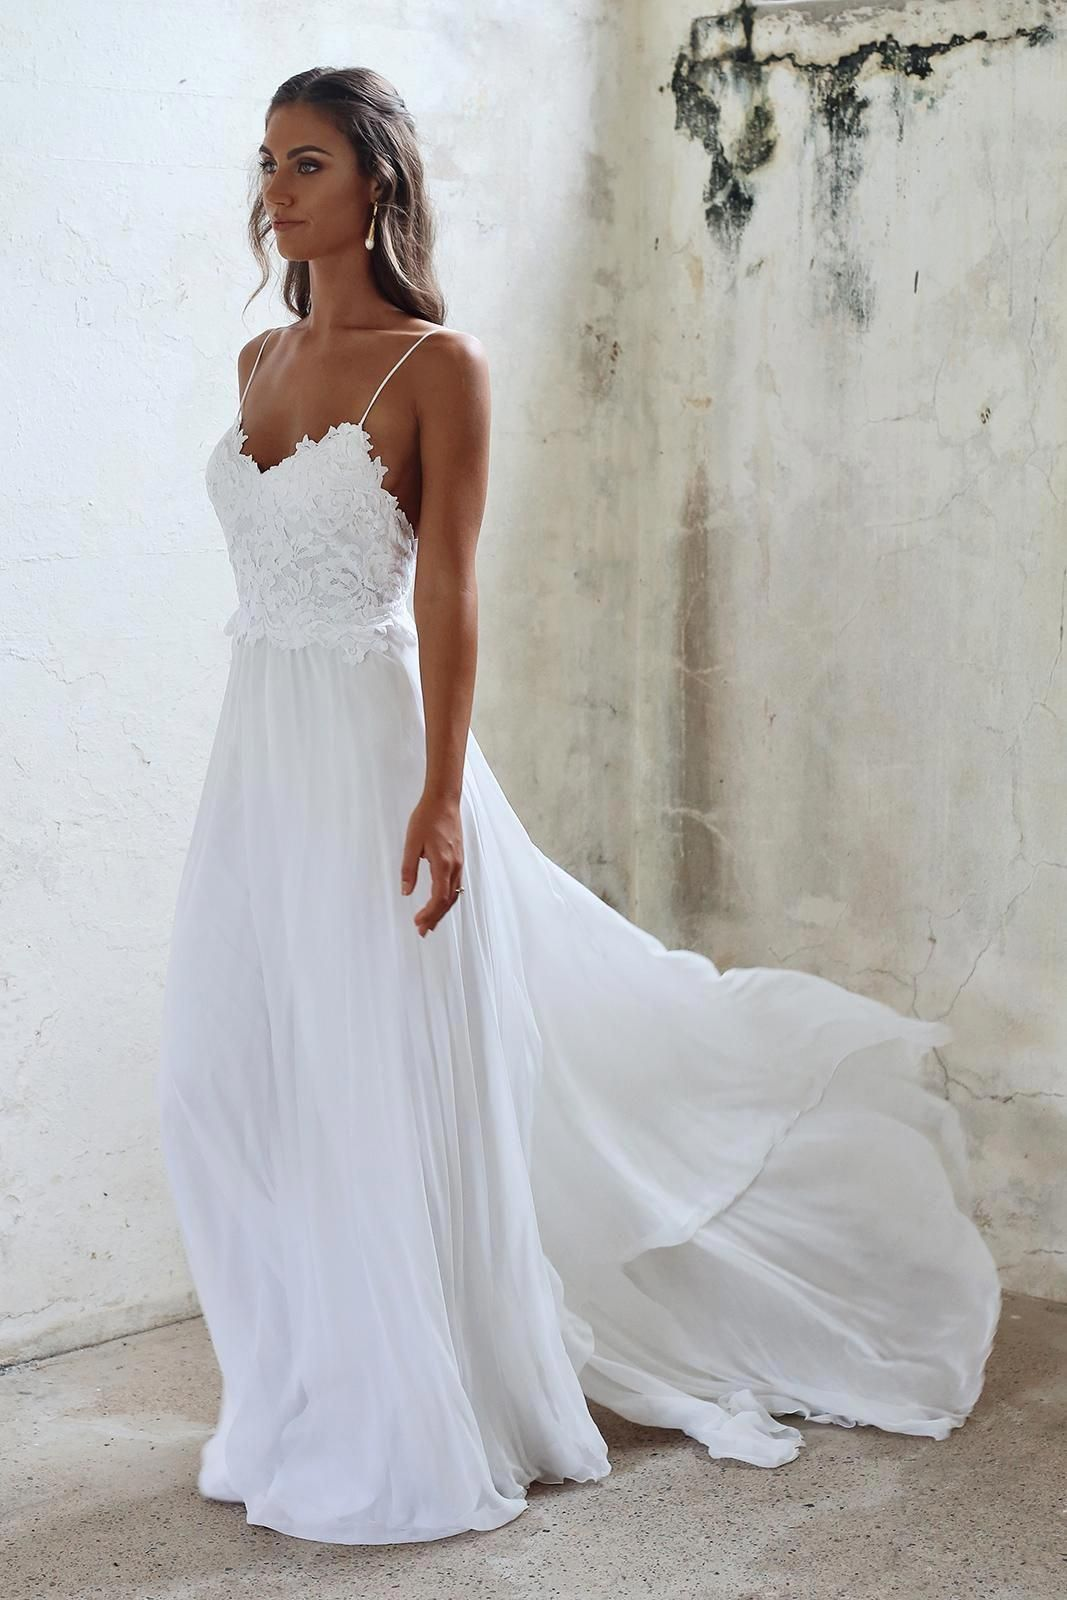 Such a pretty timeless and elegant wedding dress would look perfect